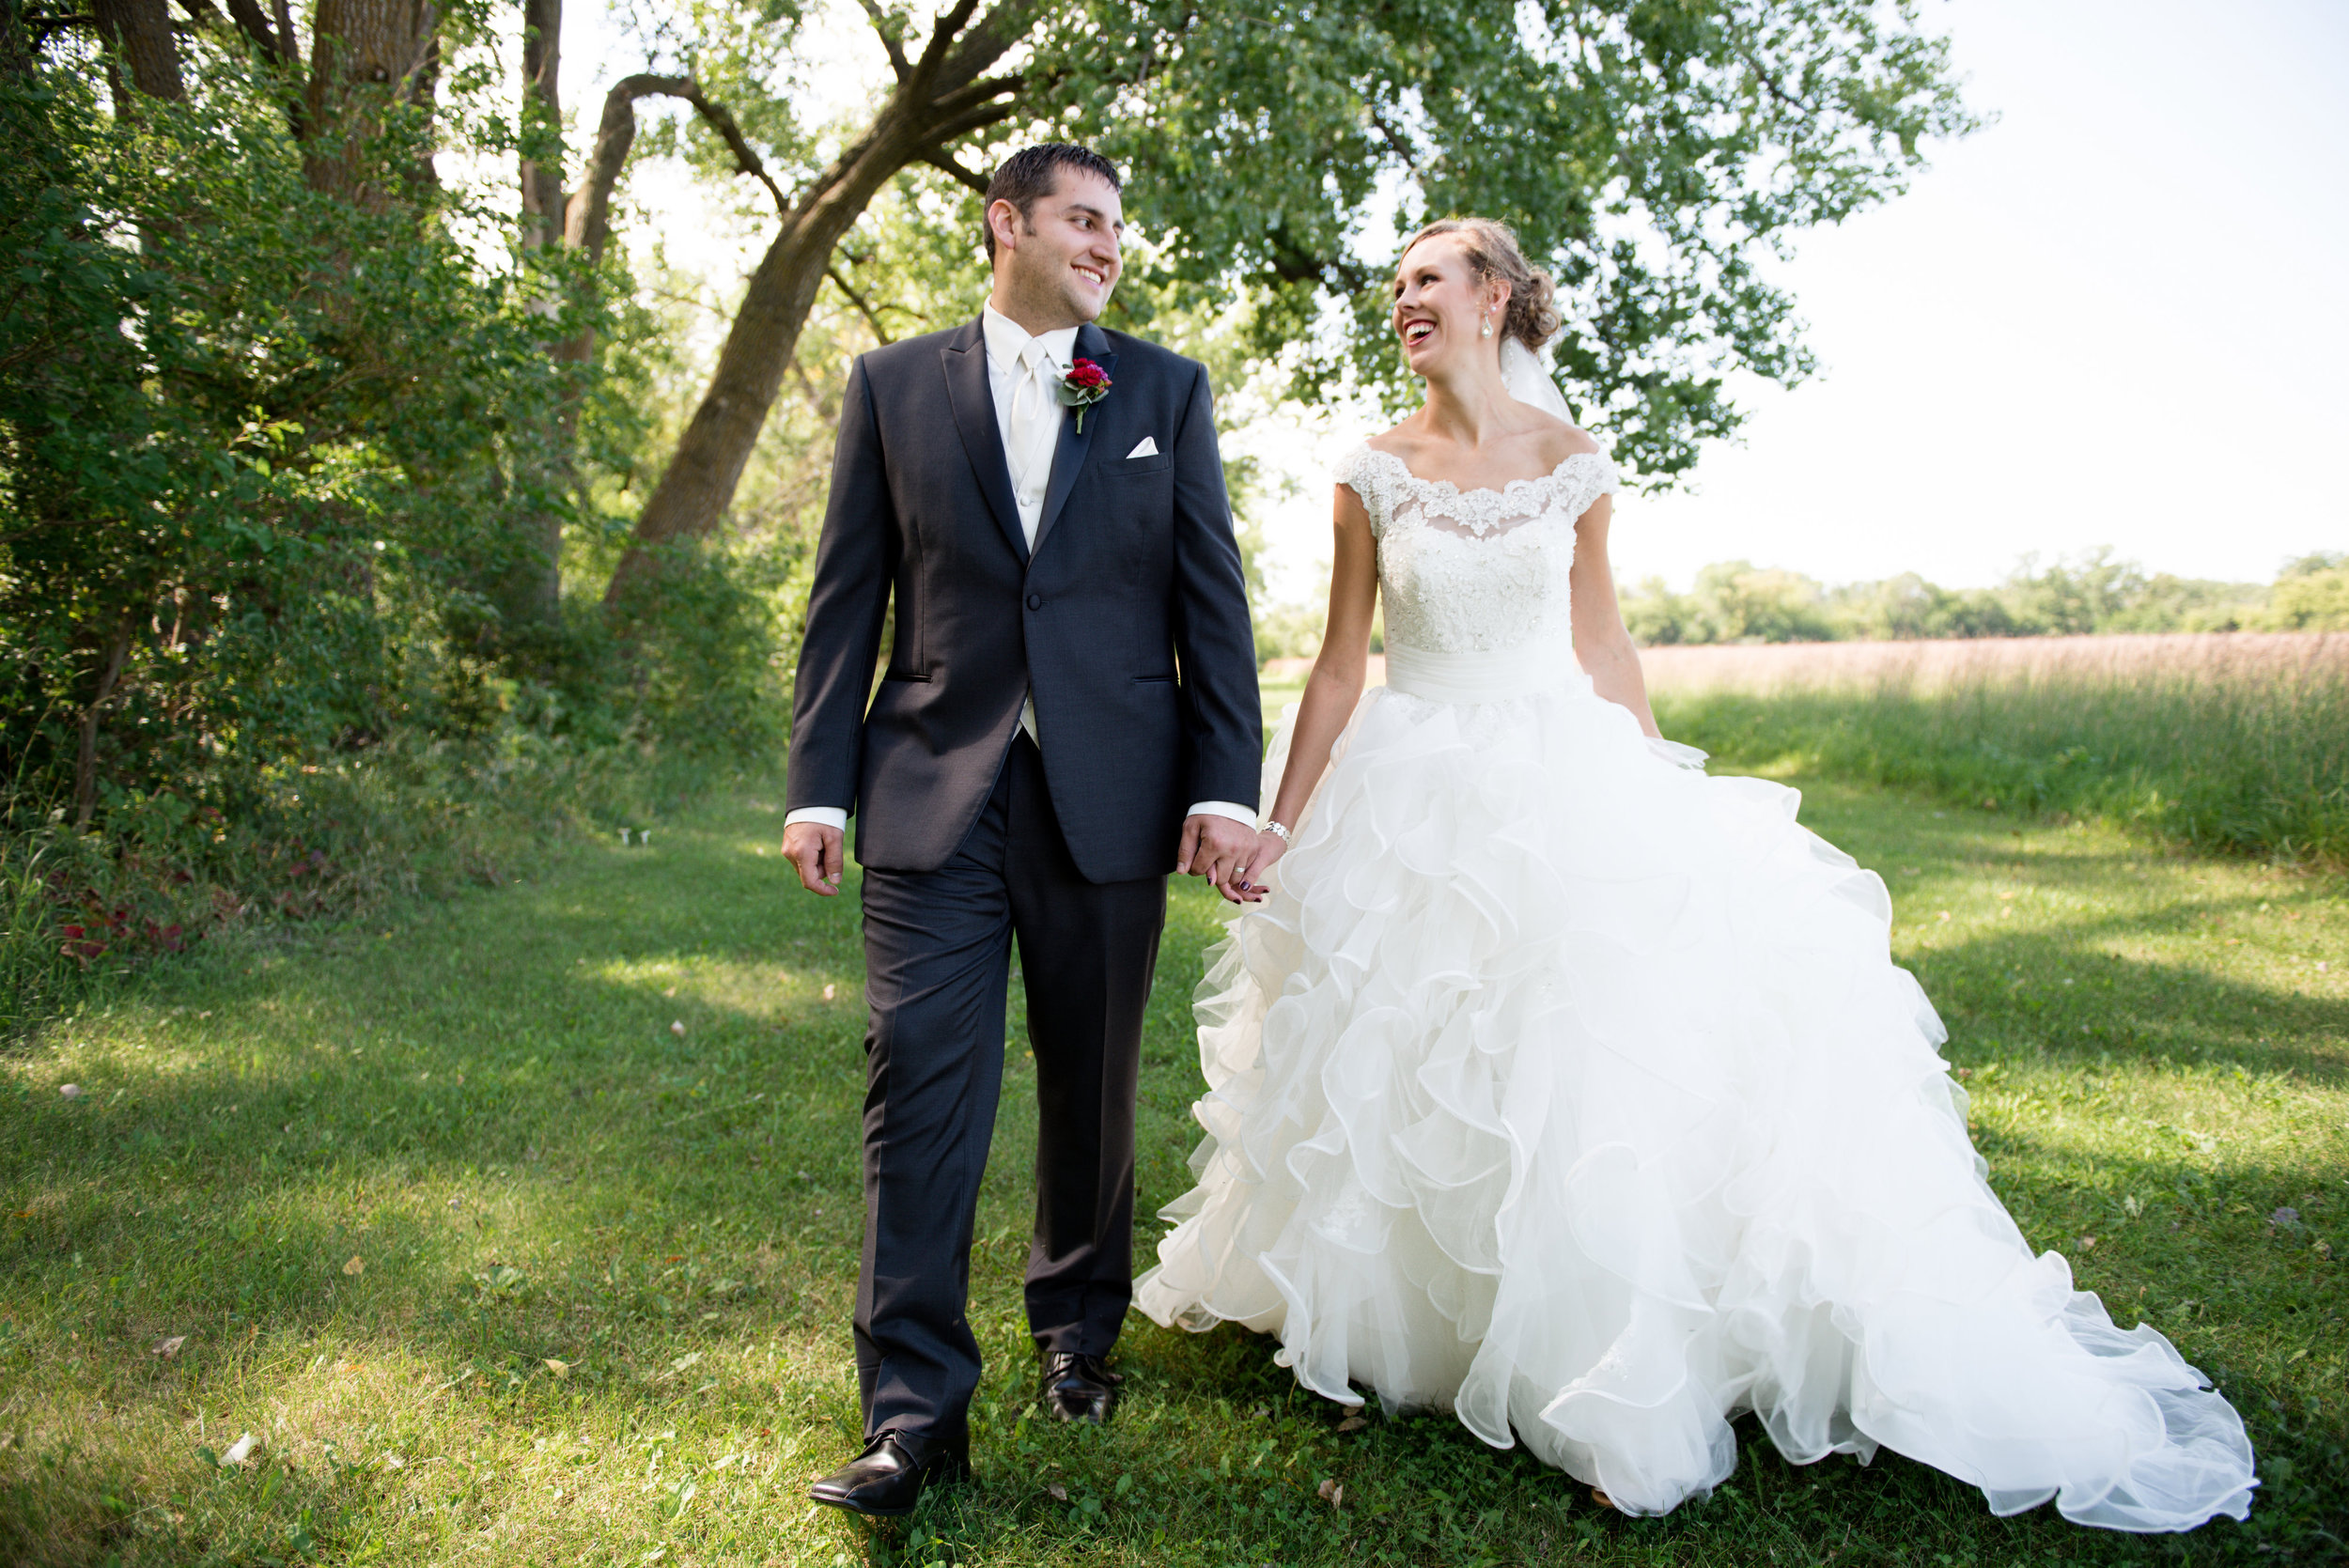 ae83a38b8bc4c 4 Mistakes to Avoid When Choosing Your Wedding Dress